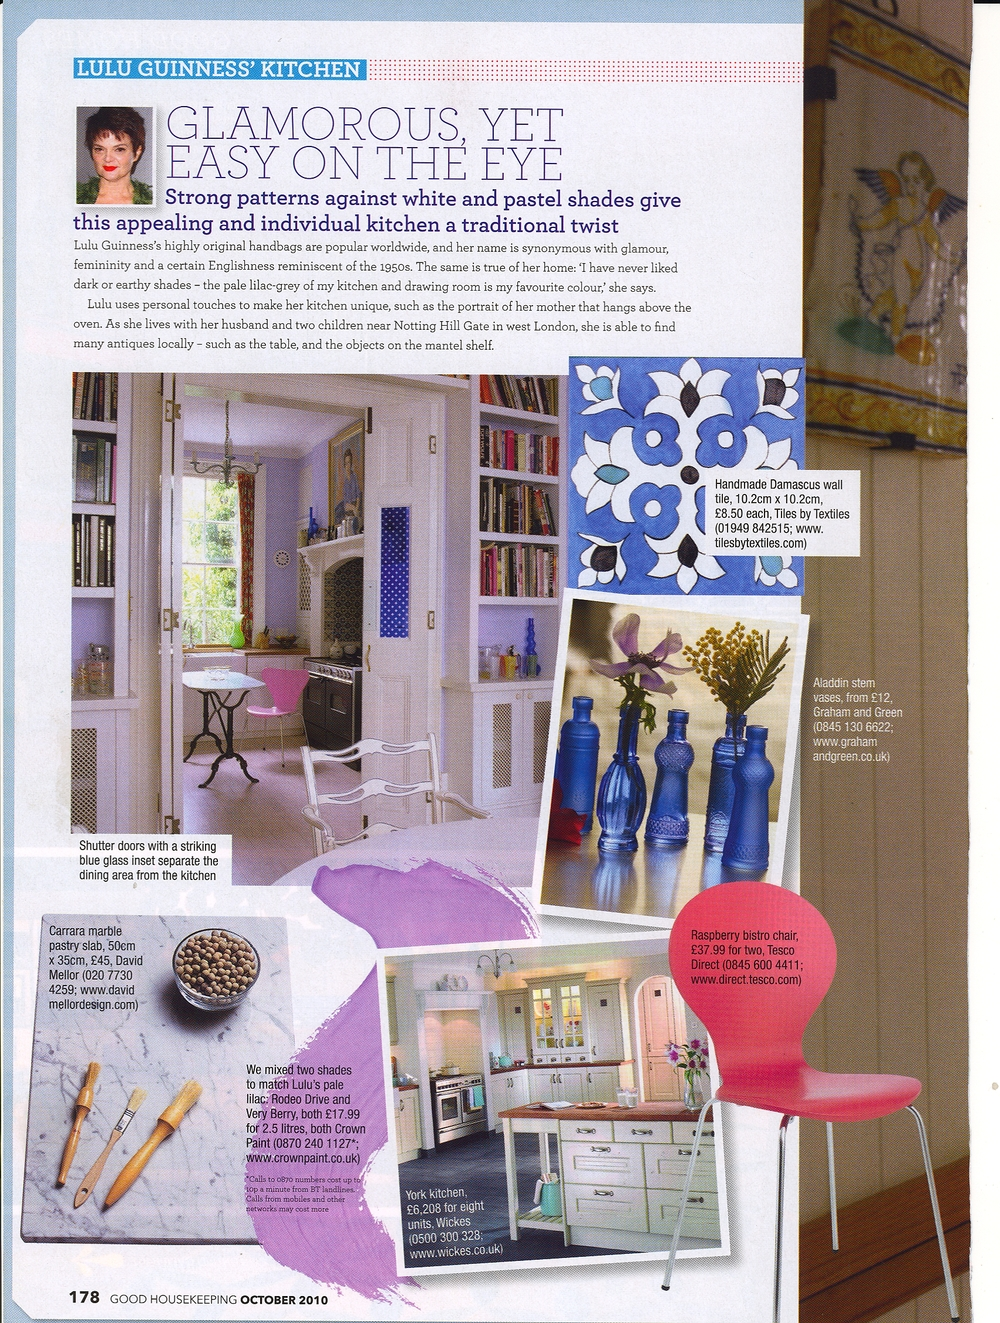 Good Housekeeping Oct 2010.jpg